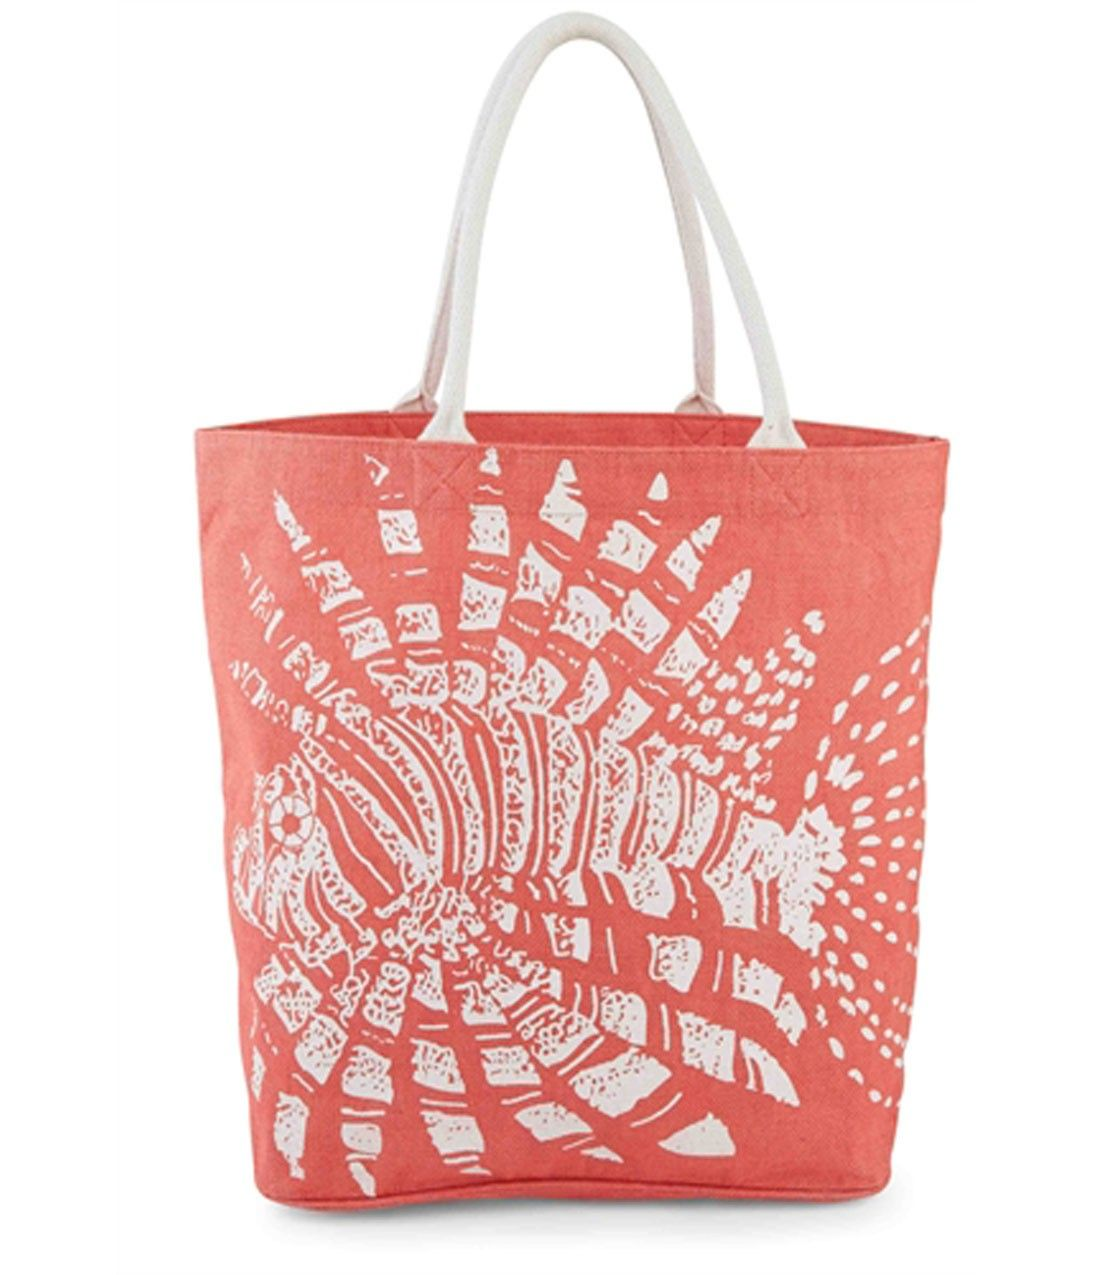 Coral Pink & White Lionfish Print Jute Beach Tote Jute